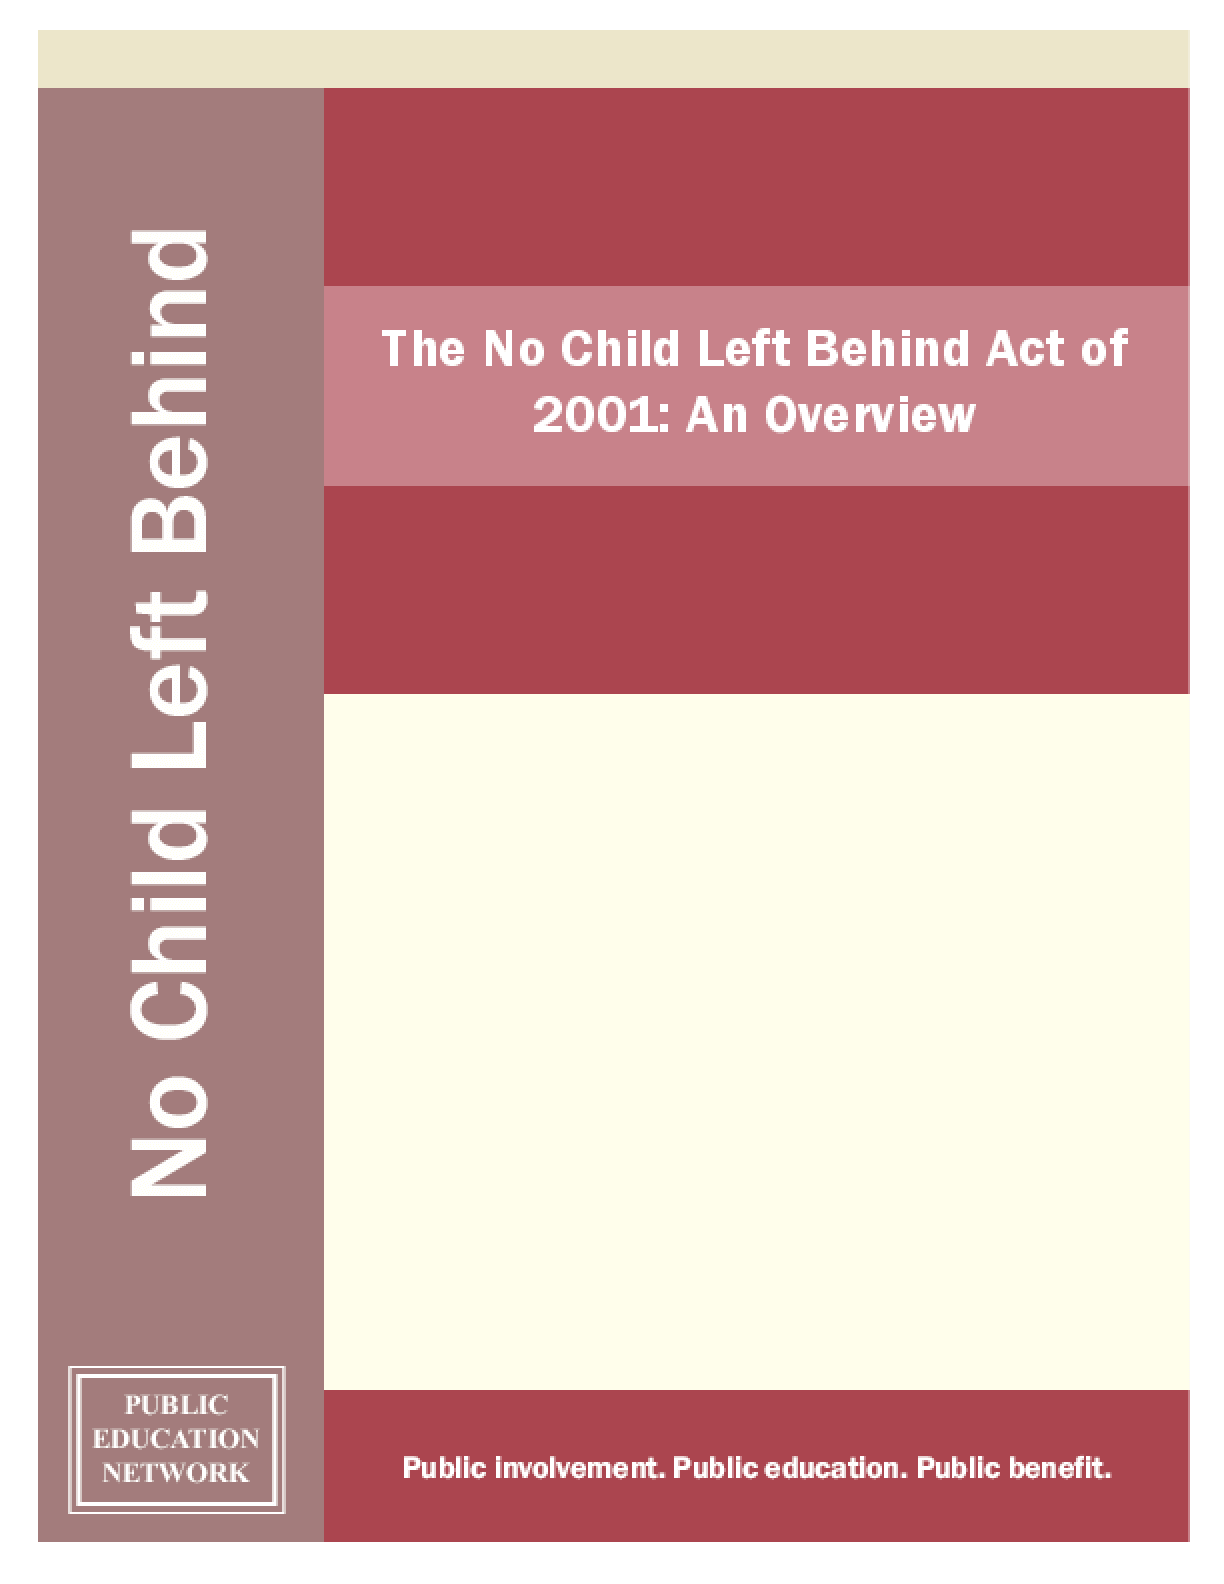 The No Child Left Behind Act of 2001: An Overview